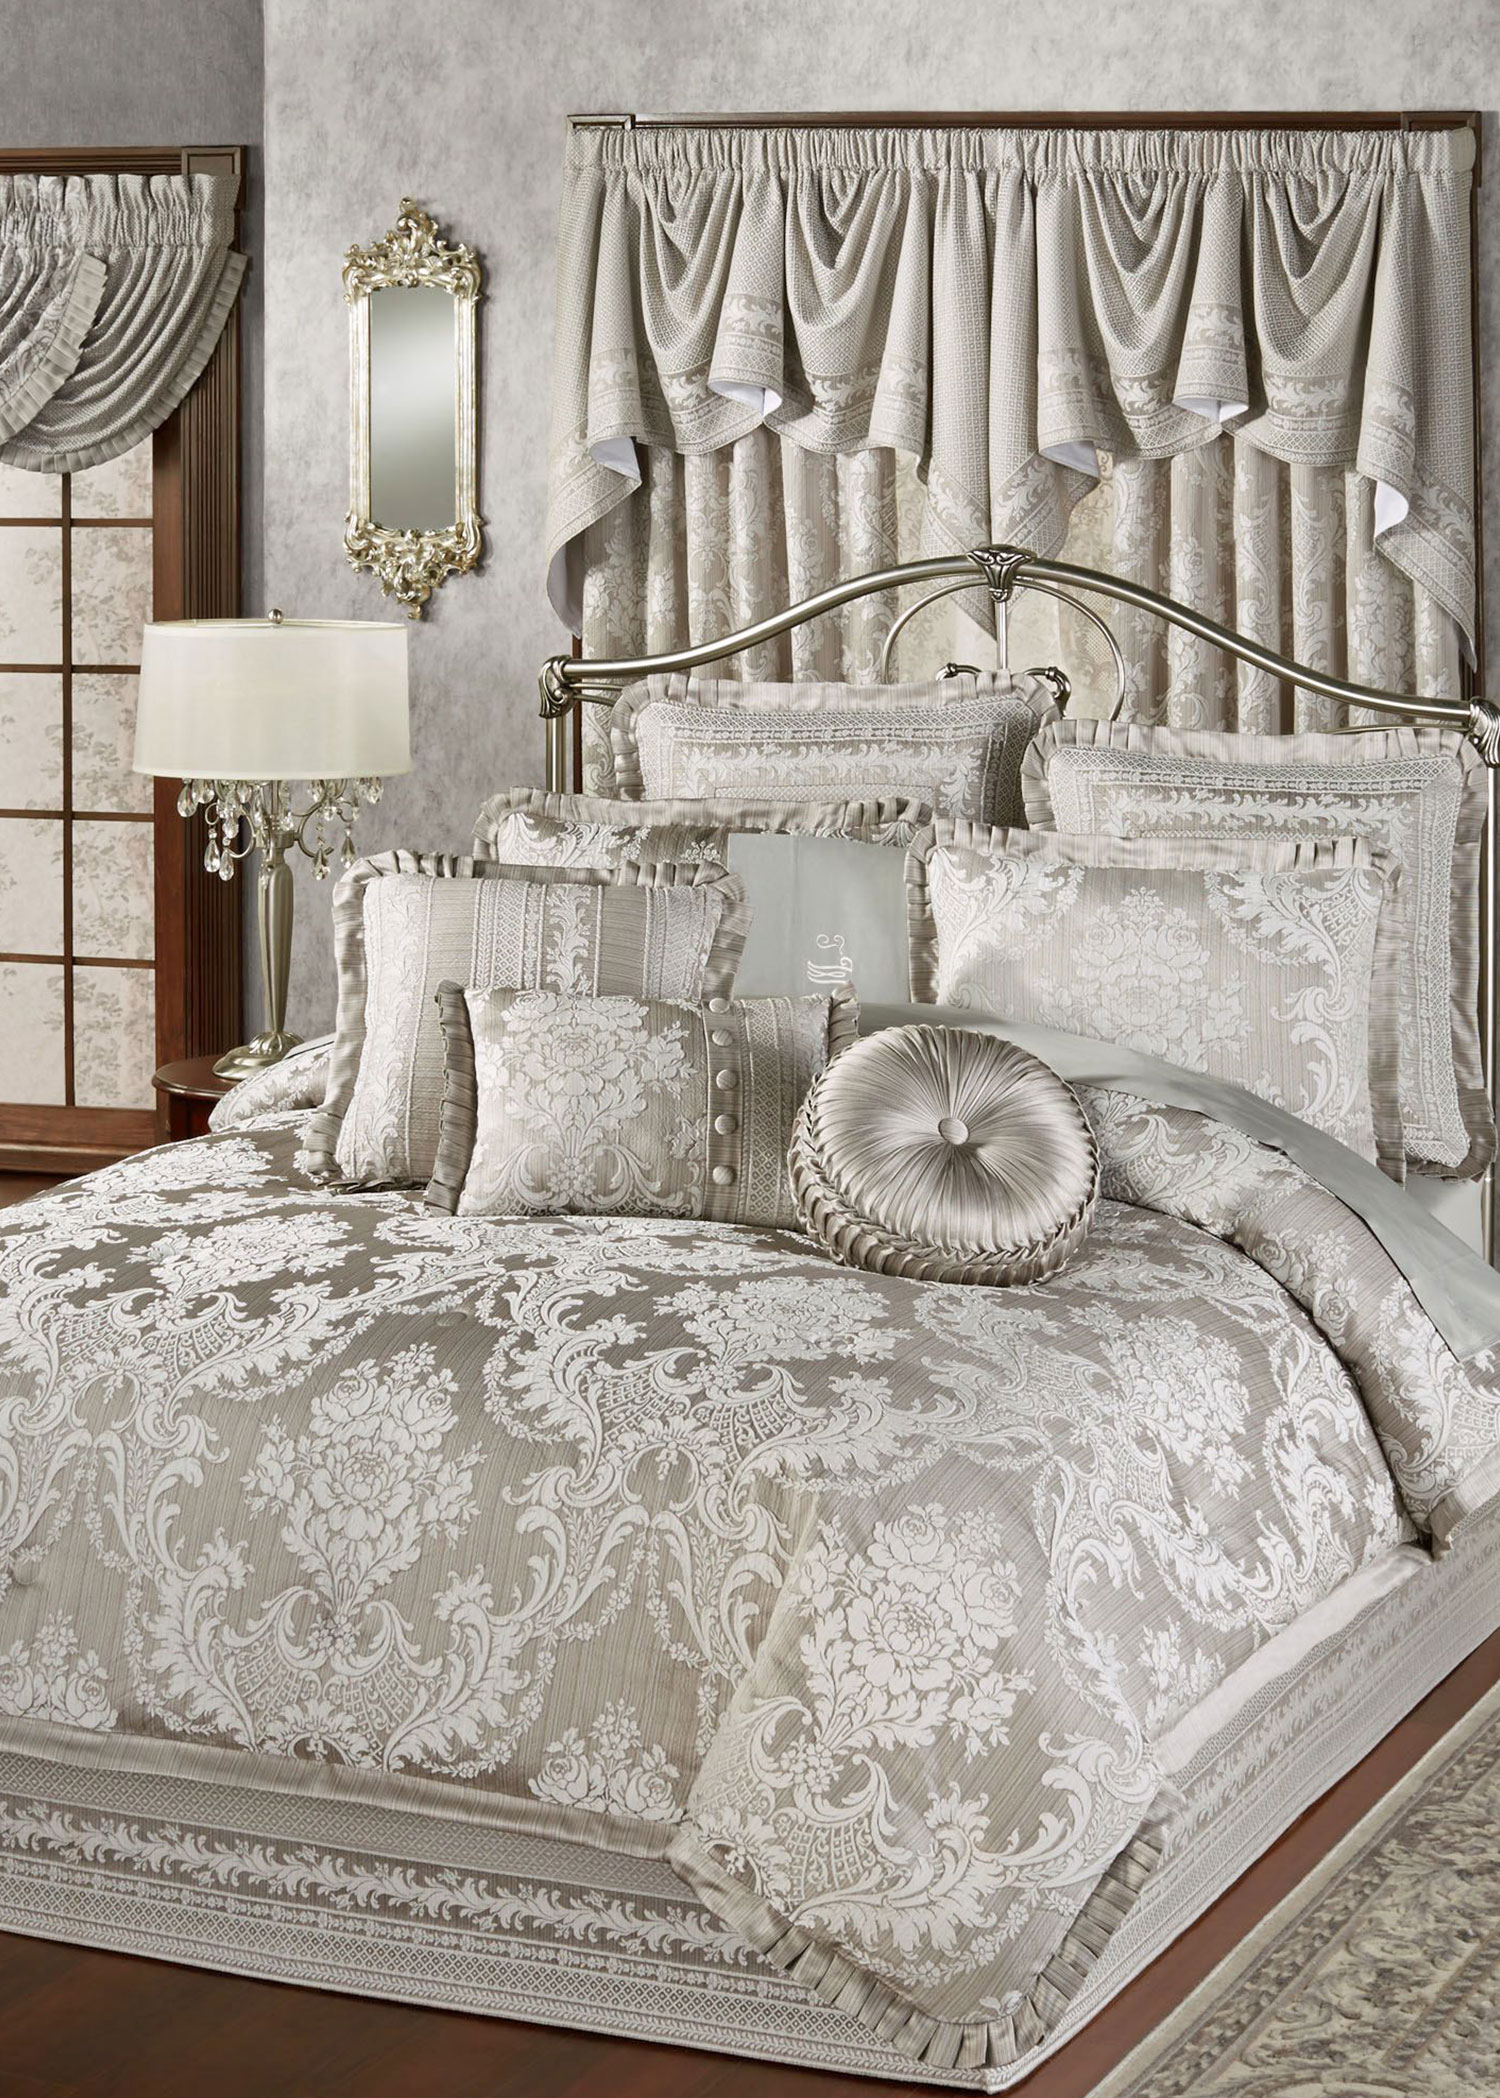 natural-textiles-luxury-bed-linen